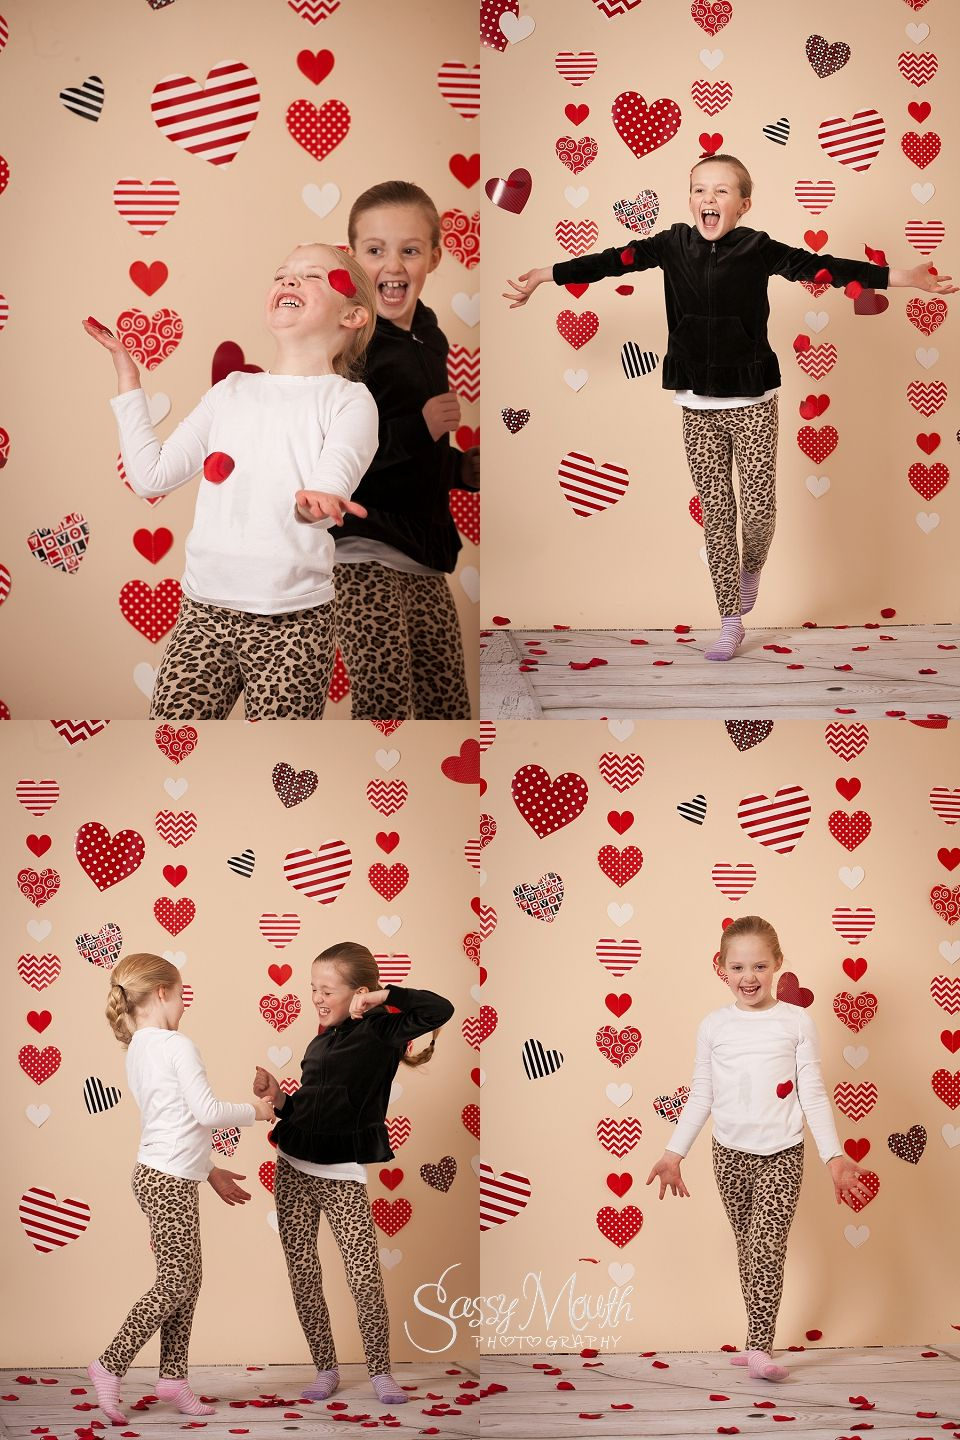 Valentines Mini Sessions Connecticut Photo Studio Sassy Mouth Photography